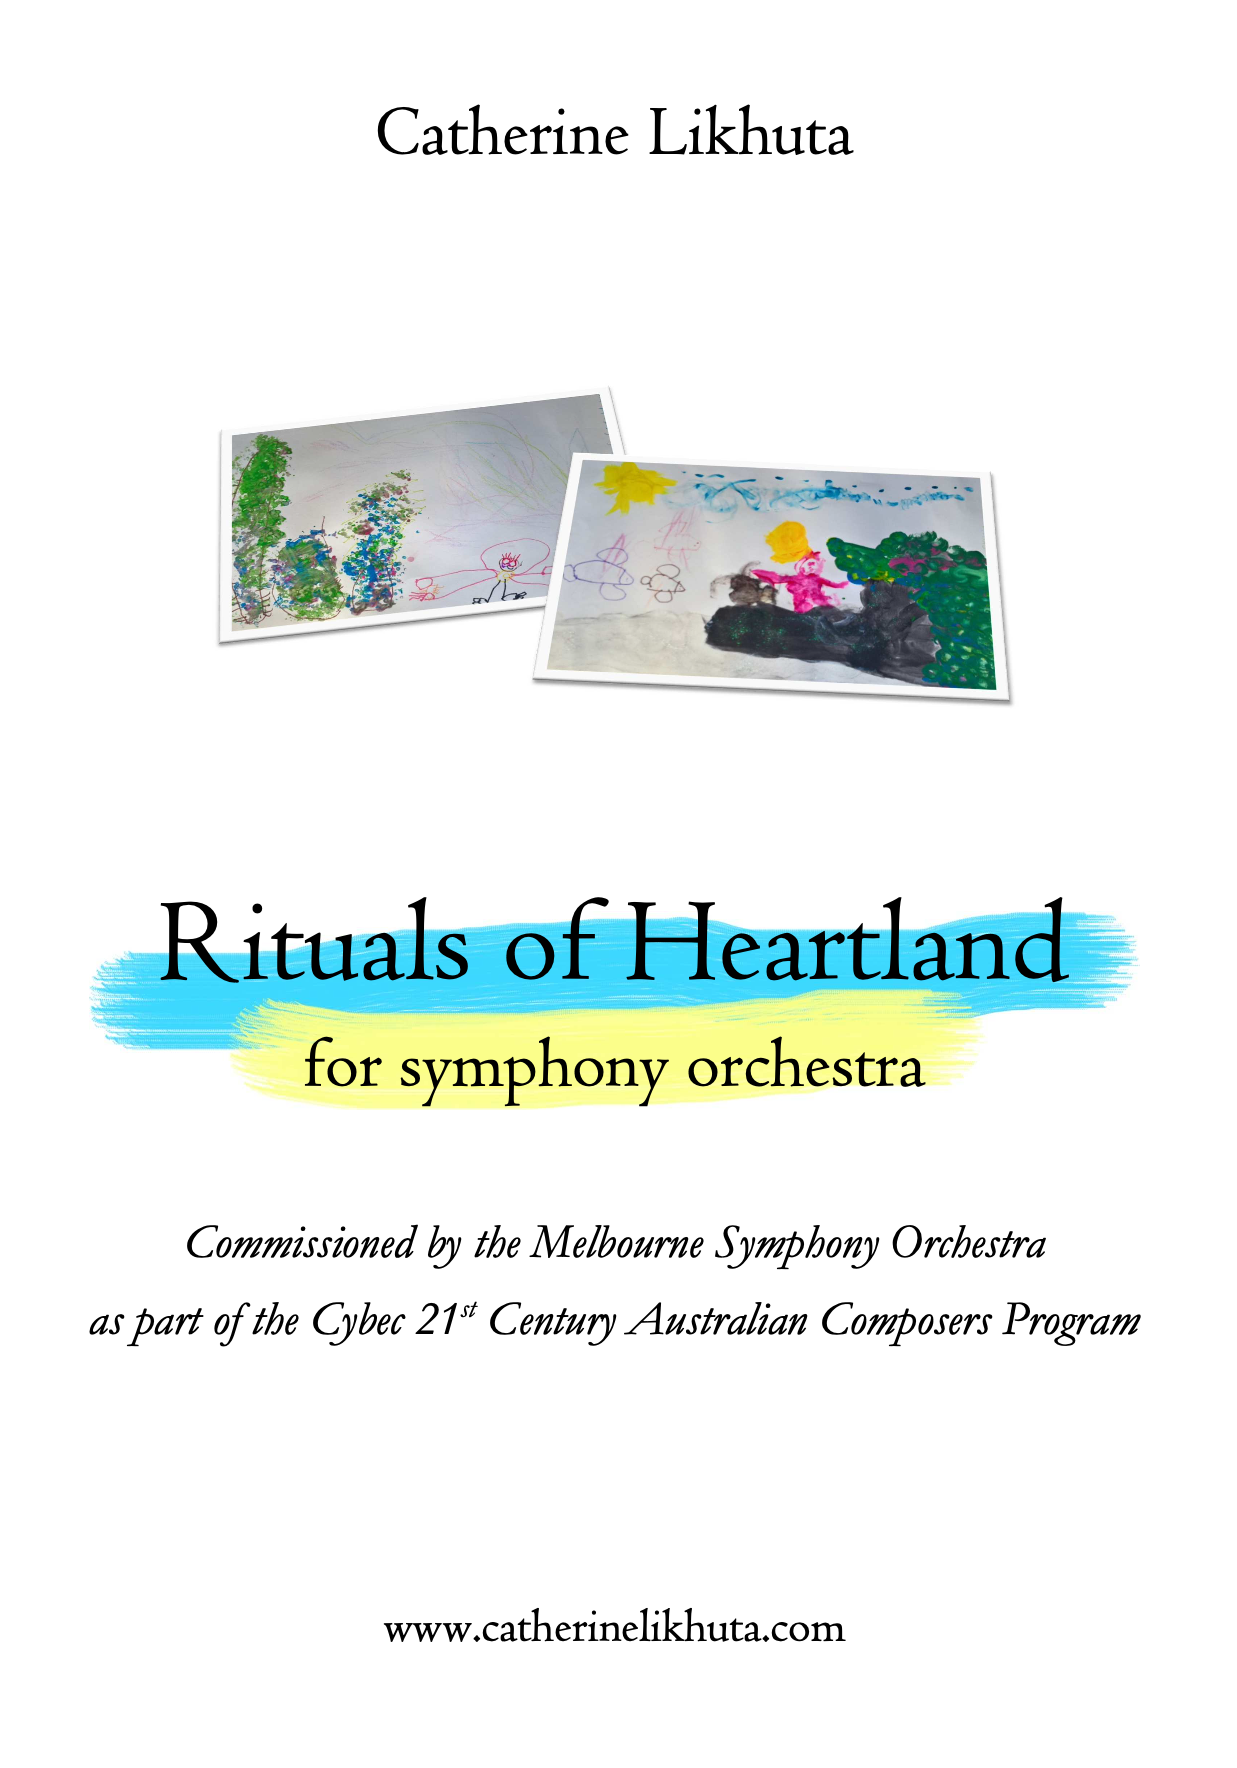 Rituals Of The Heartland by Cathy Likhuta